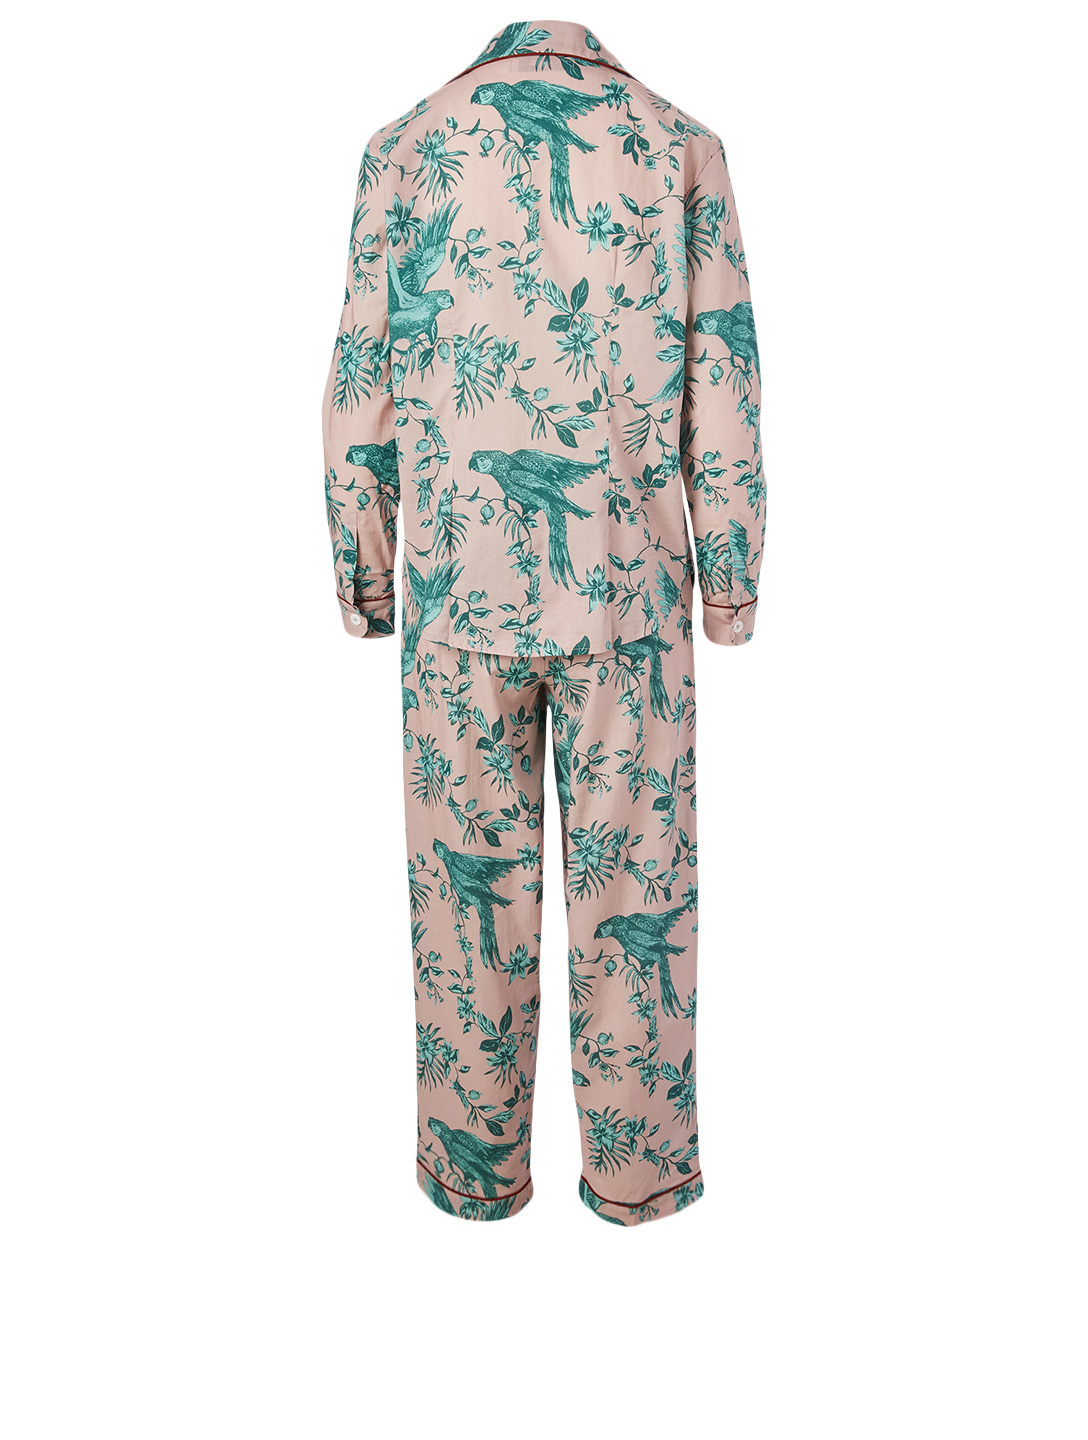 DESMOND & DEMPSEY Long Cotton Pyjama Set In Bromley Parrot Print H Project Pink